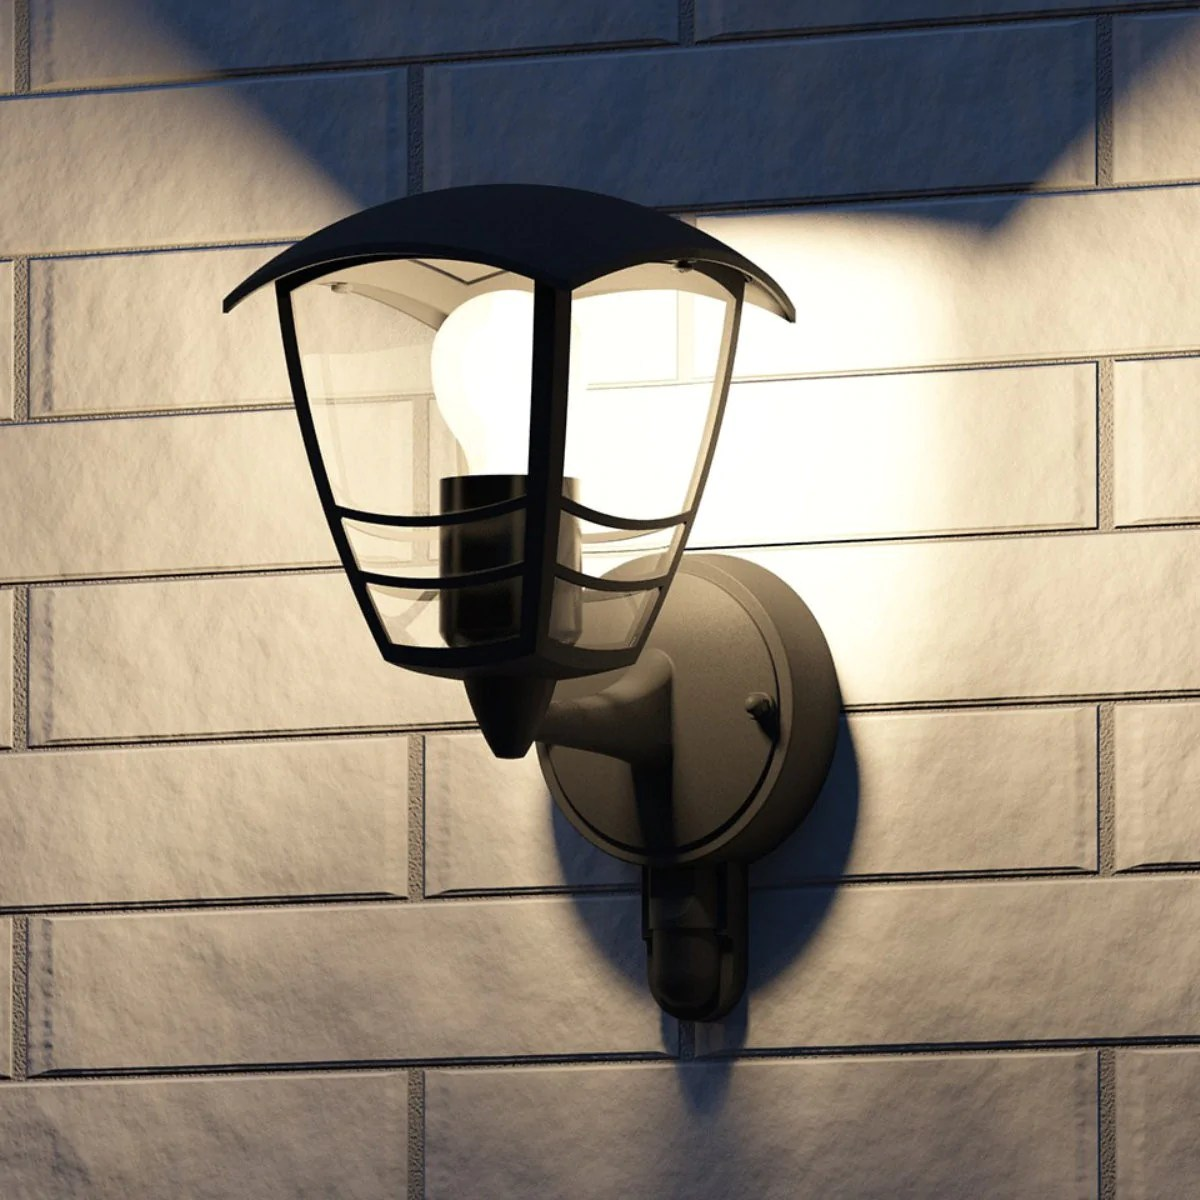 Philips Mygarden Outdoor Wall Light Philips 15388 30 16 Creek Black Outdoor Up Lantern Wall Light With Pir 153883016